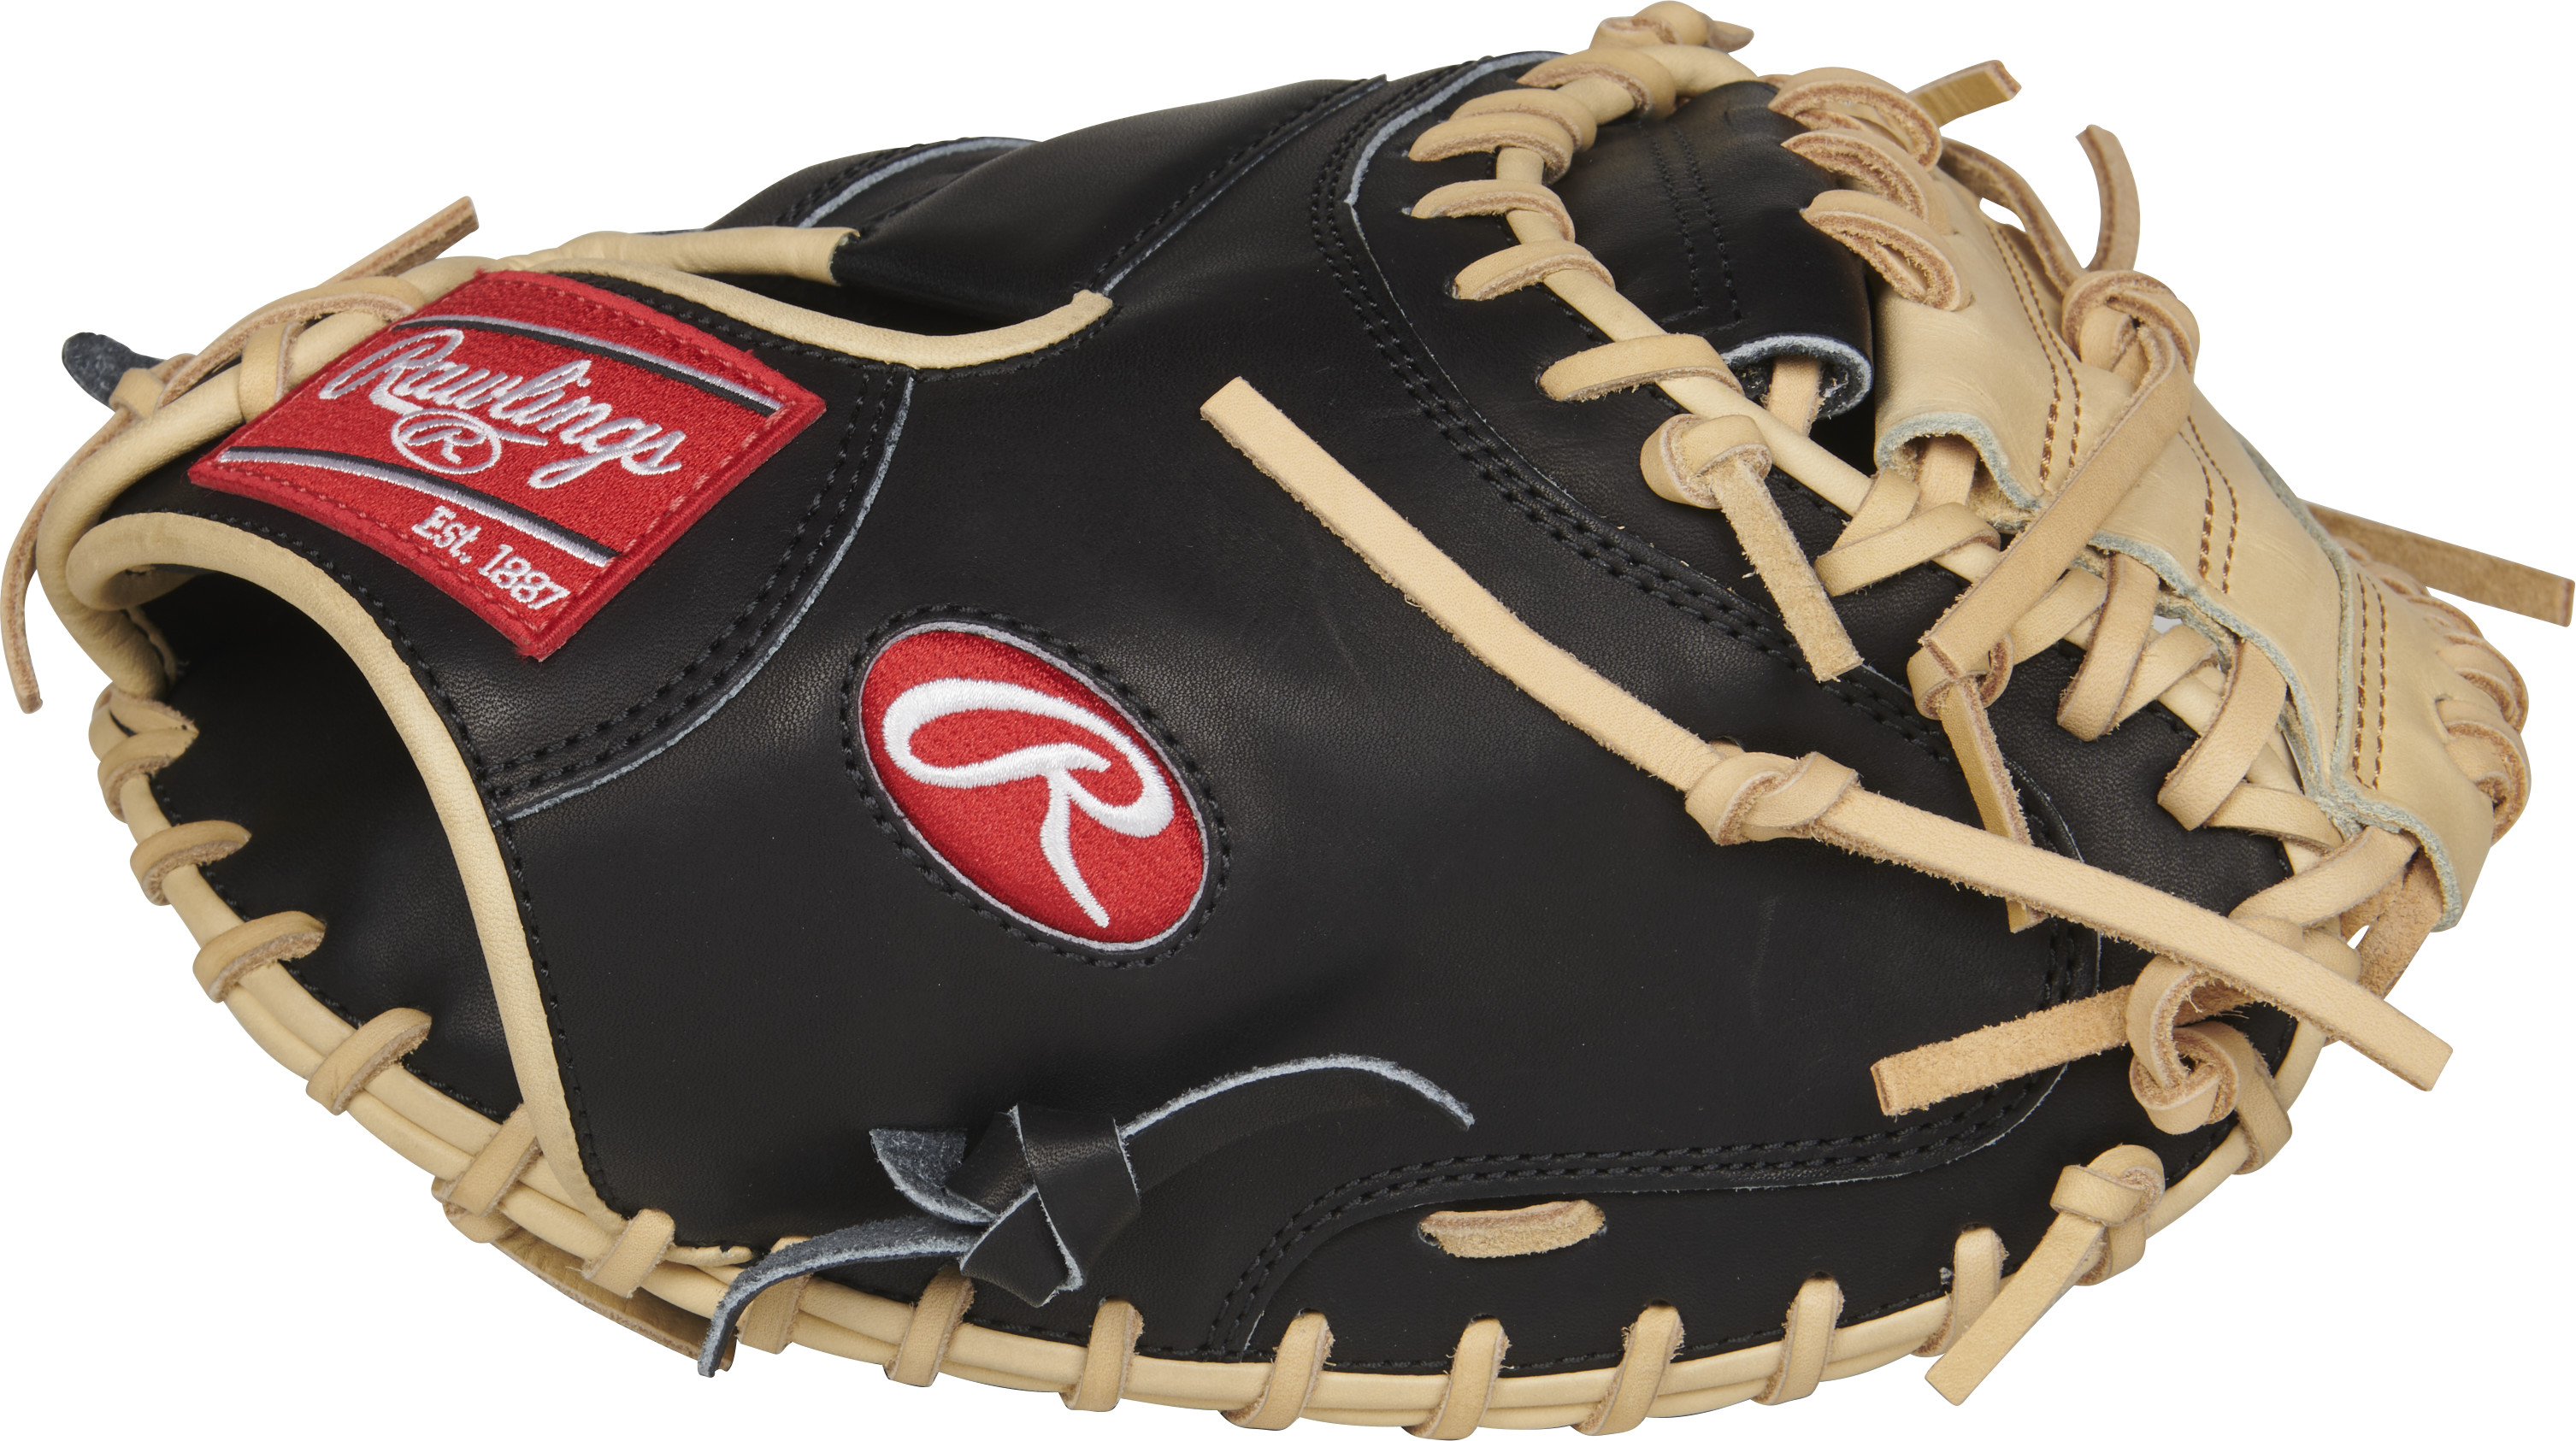 http://www.bestbatdeals.com/images/gloves/rawlings/PRORCM33-23BC-3.jpg